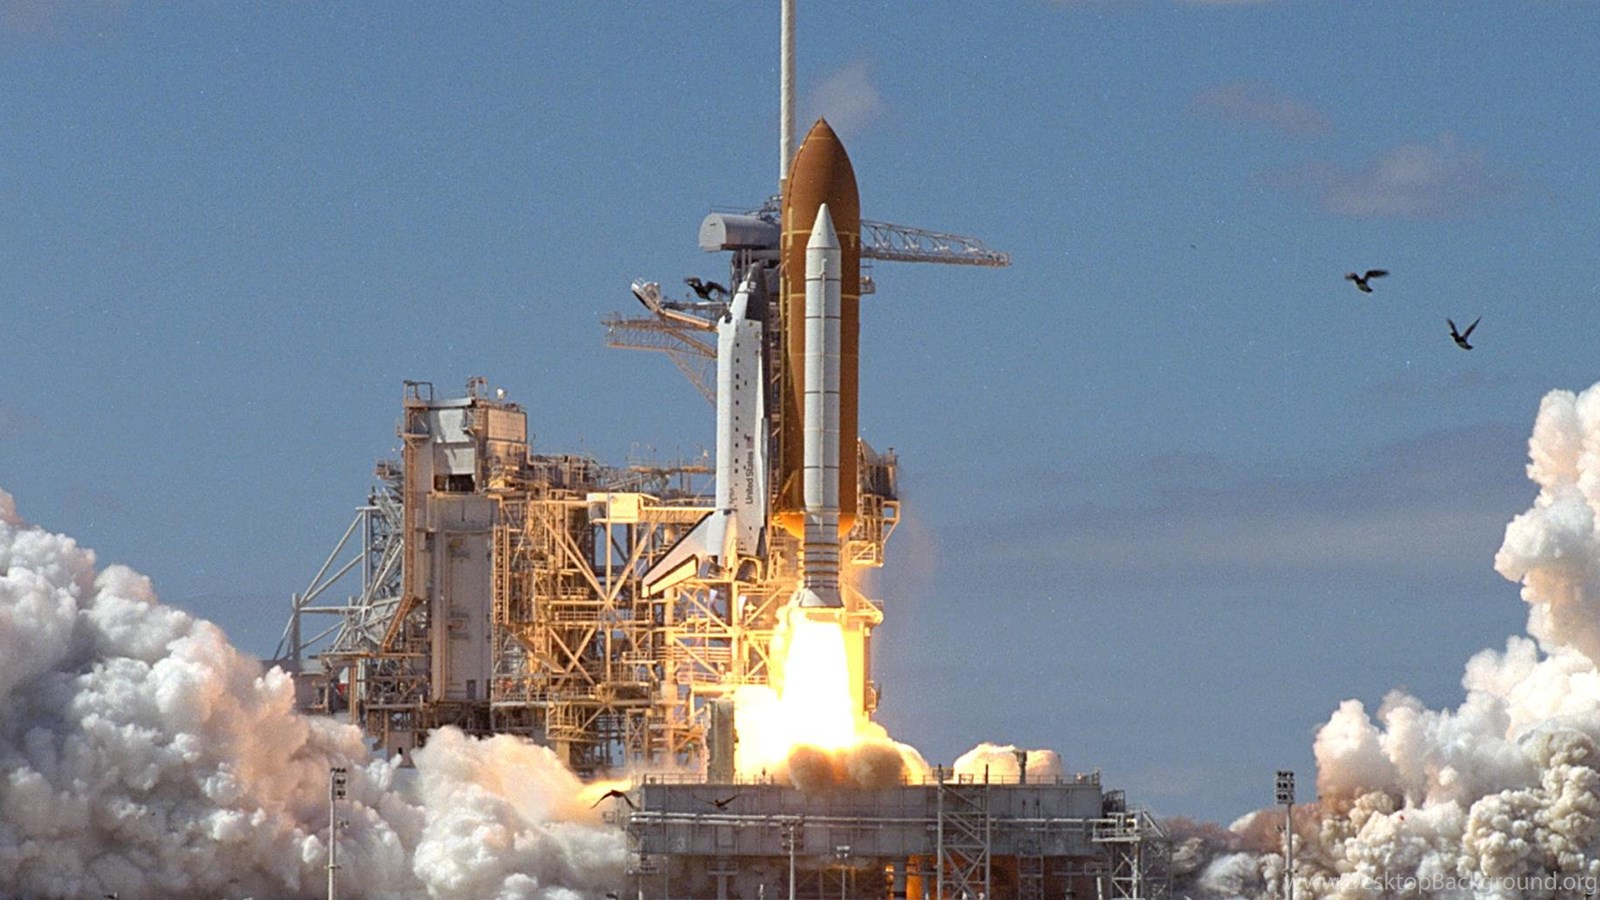 Nasa space shuttle launch wallpapers page 2 pics about - Nasa space shuttle wallpaper ...